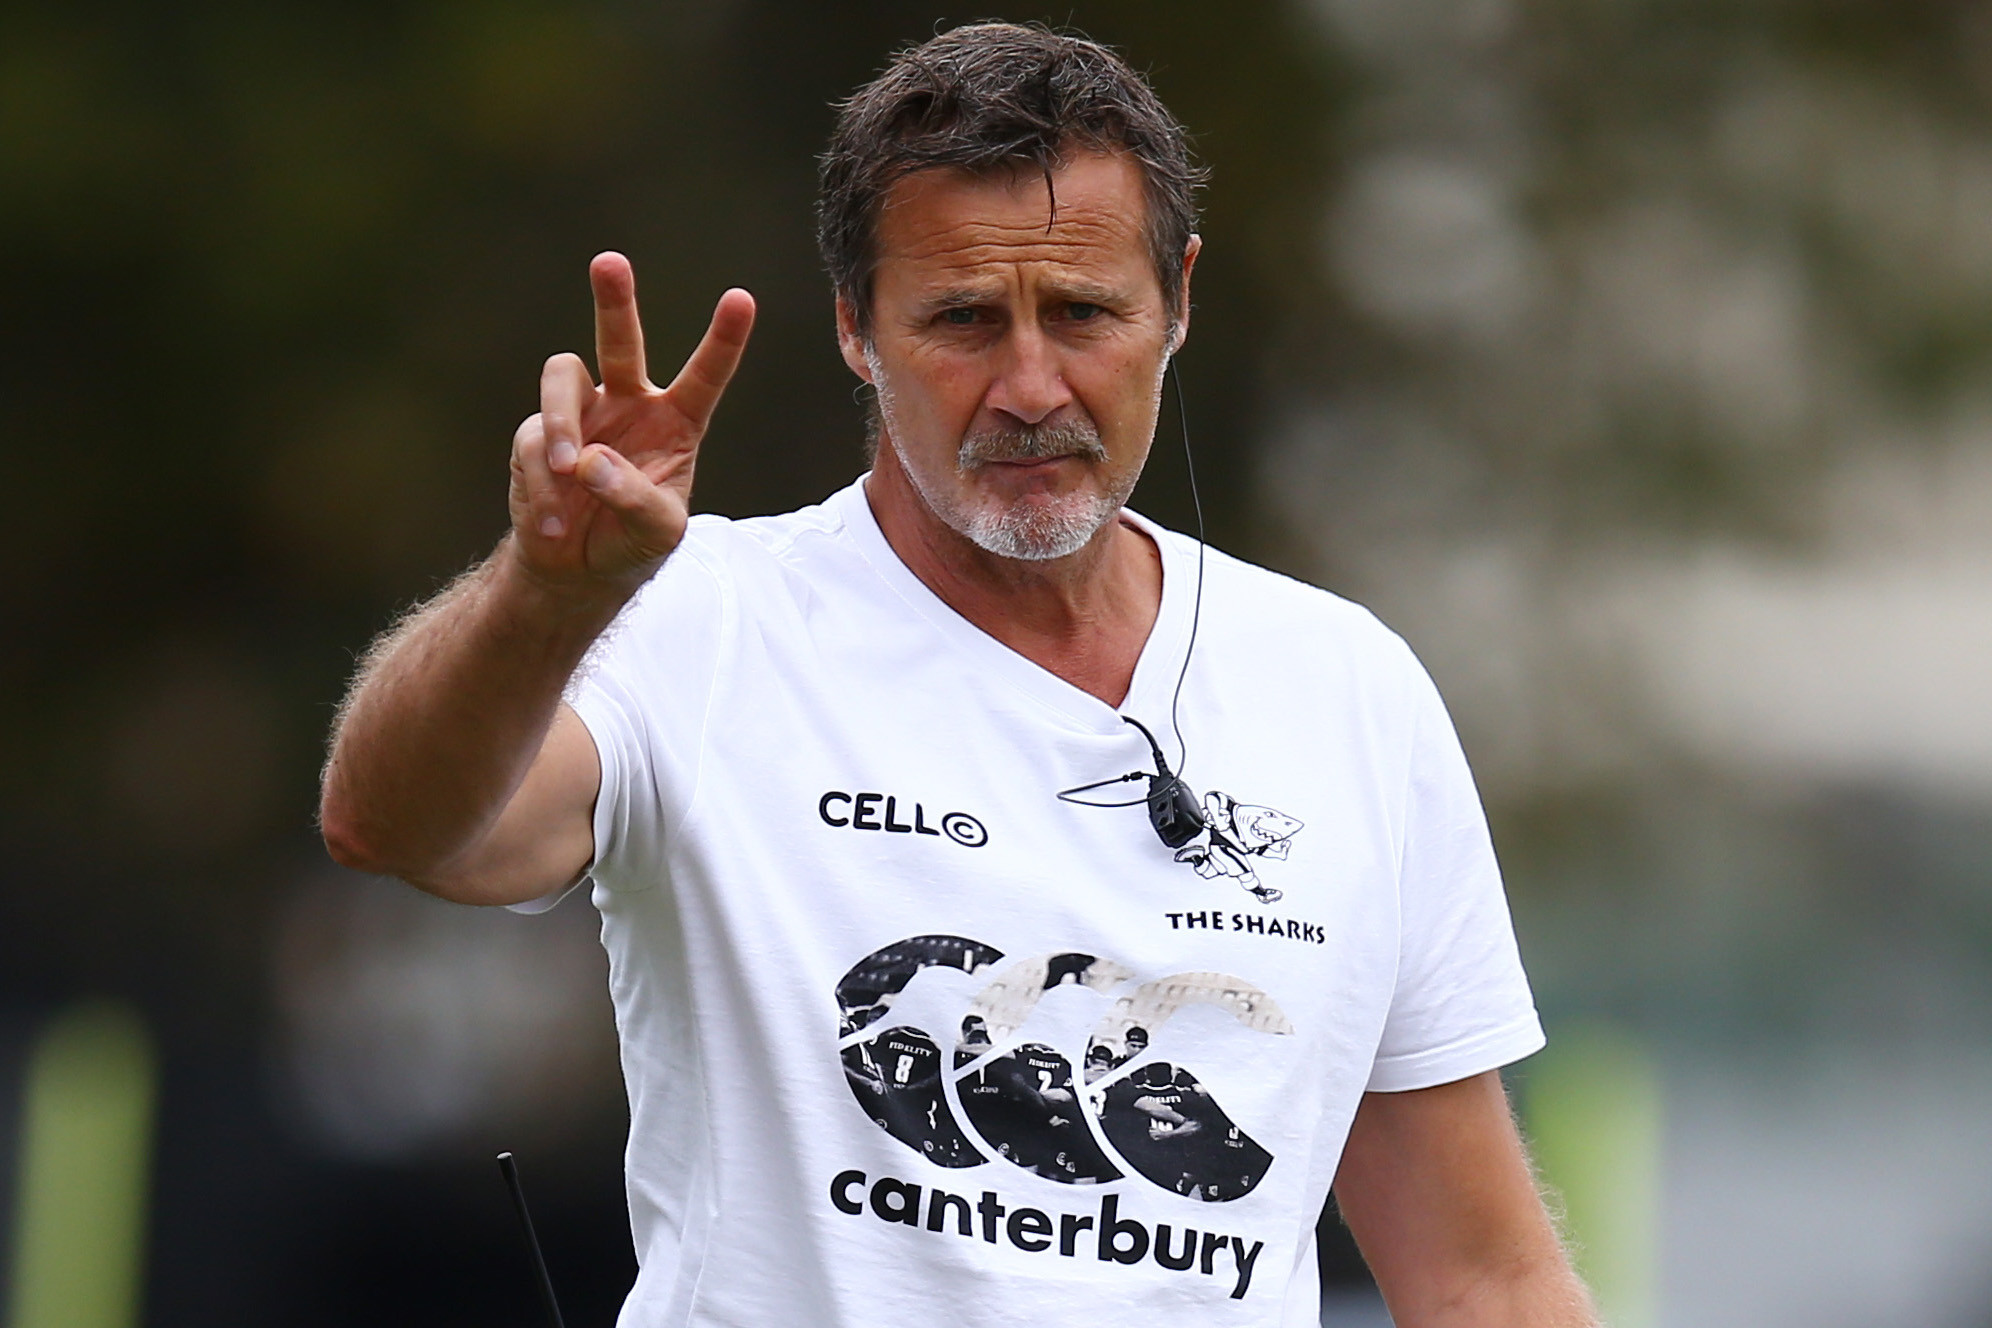 16 October 2018: Robert du Preez, head coach of the Cell C Sharks, during a training session at Jonsson Kings Park in Durban. (Photograph by Steve Haag/Gallo Images)